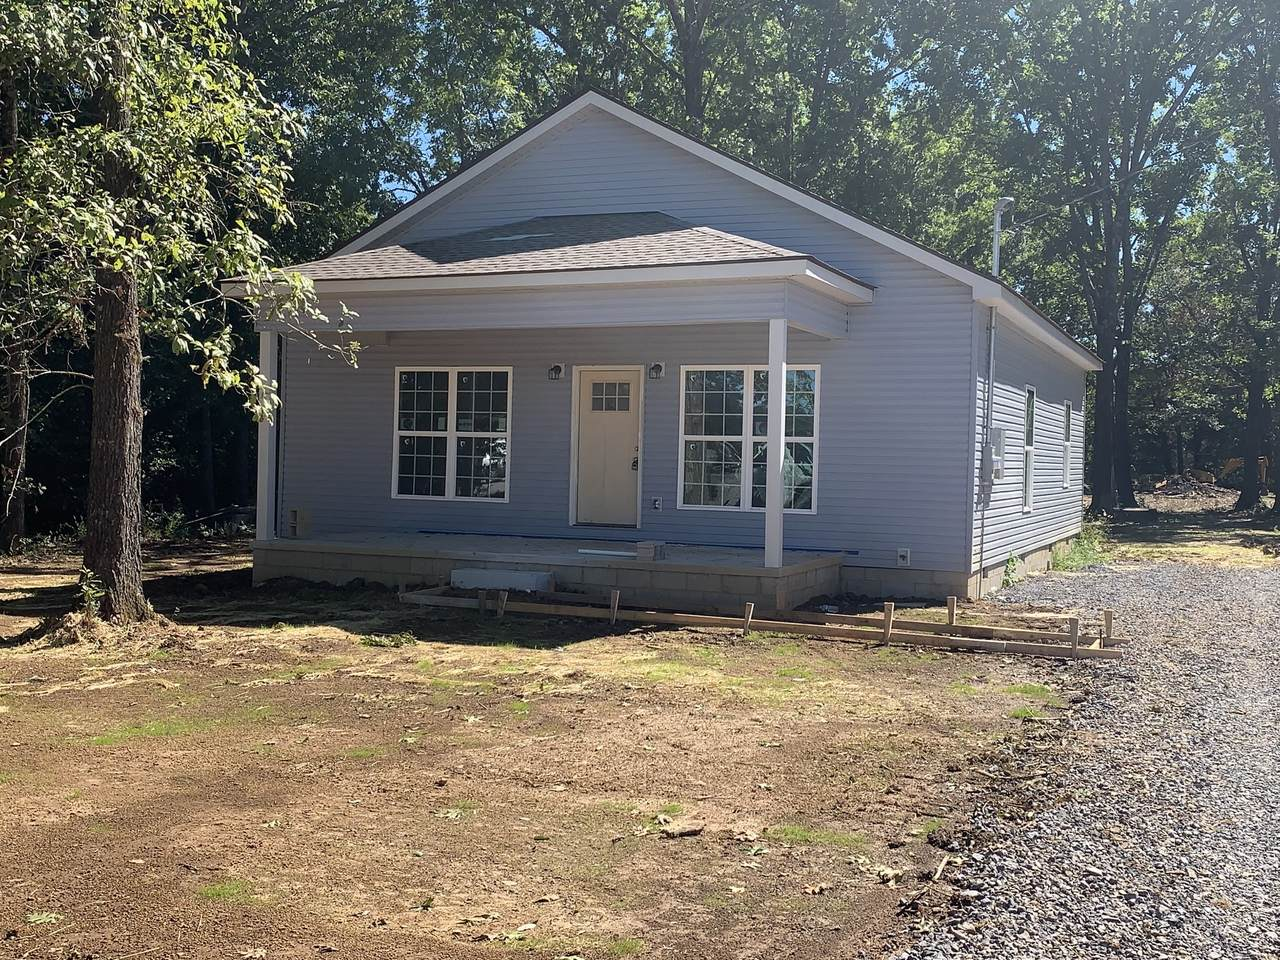 241 Reese St - Photo 1